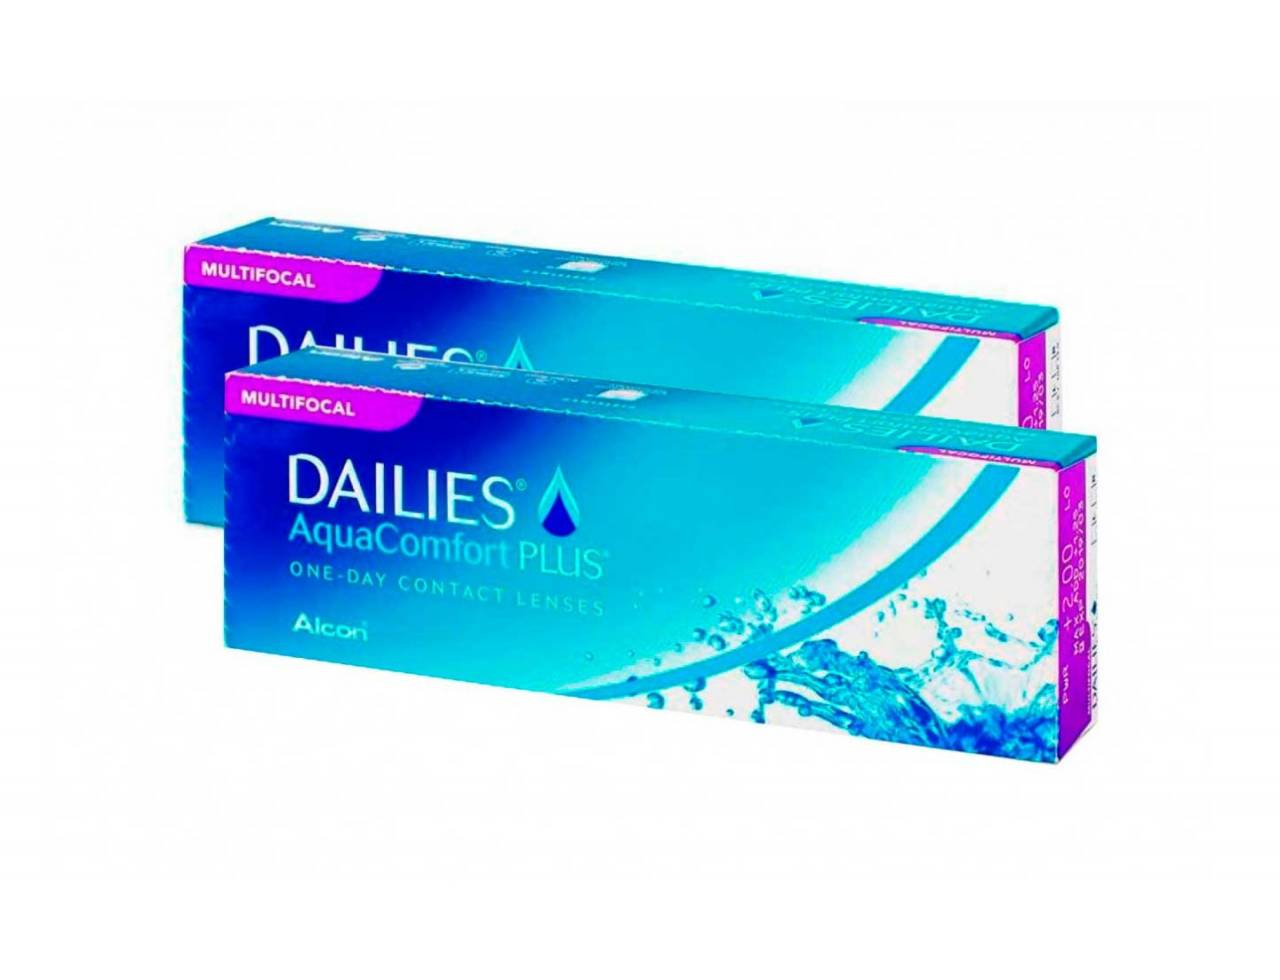 Dailies Aqua Multifocal - 2 упаковки (-3%)